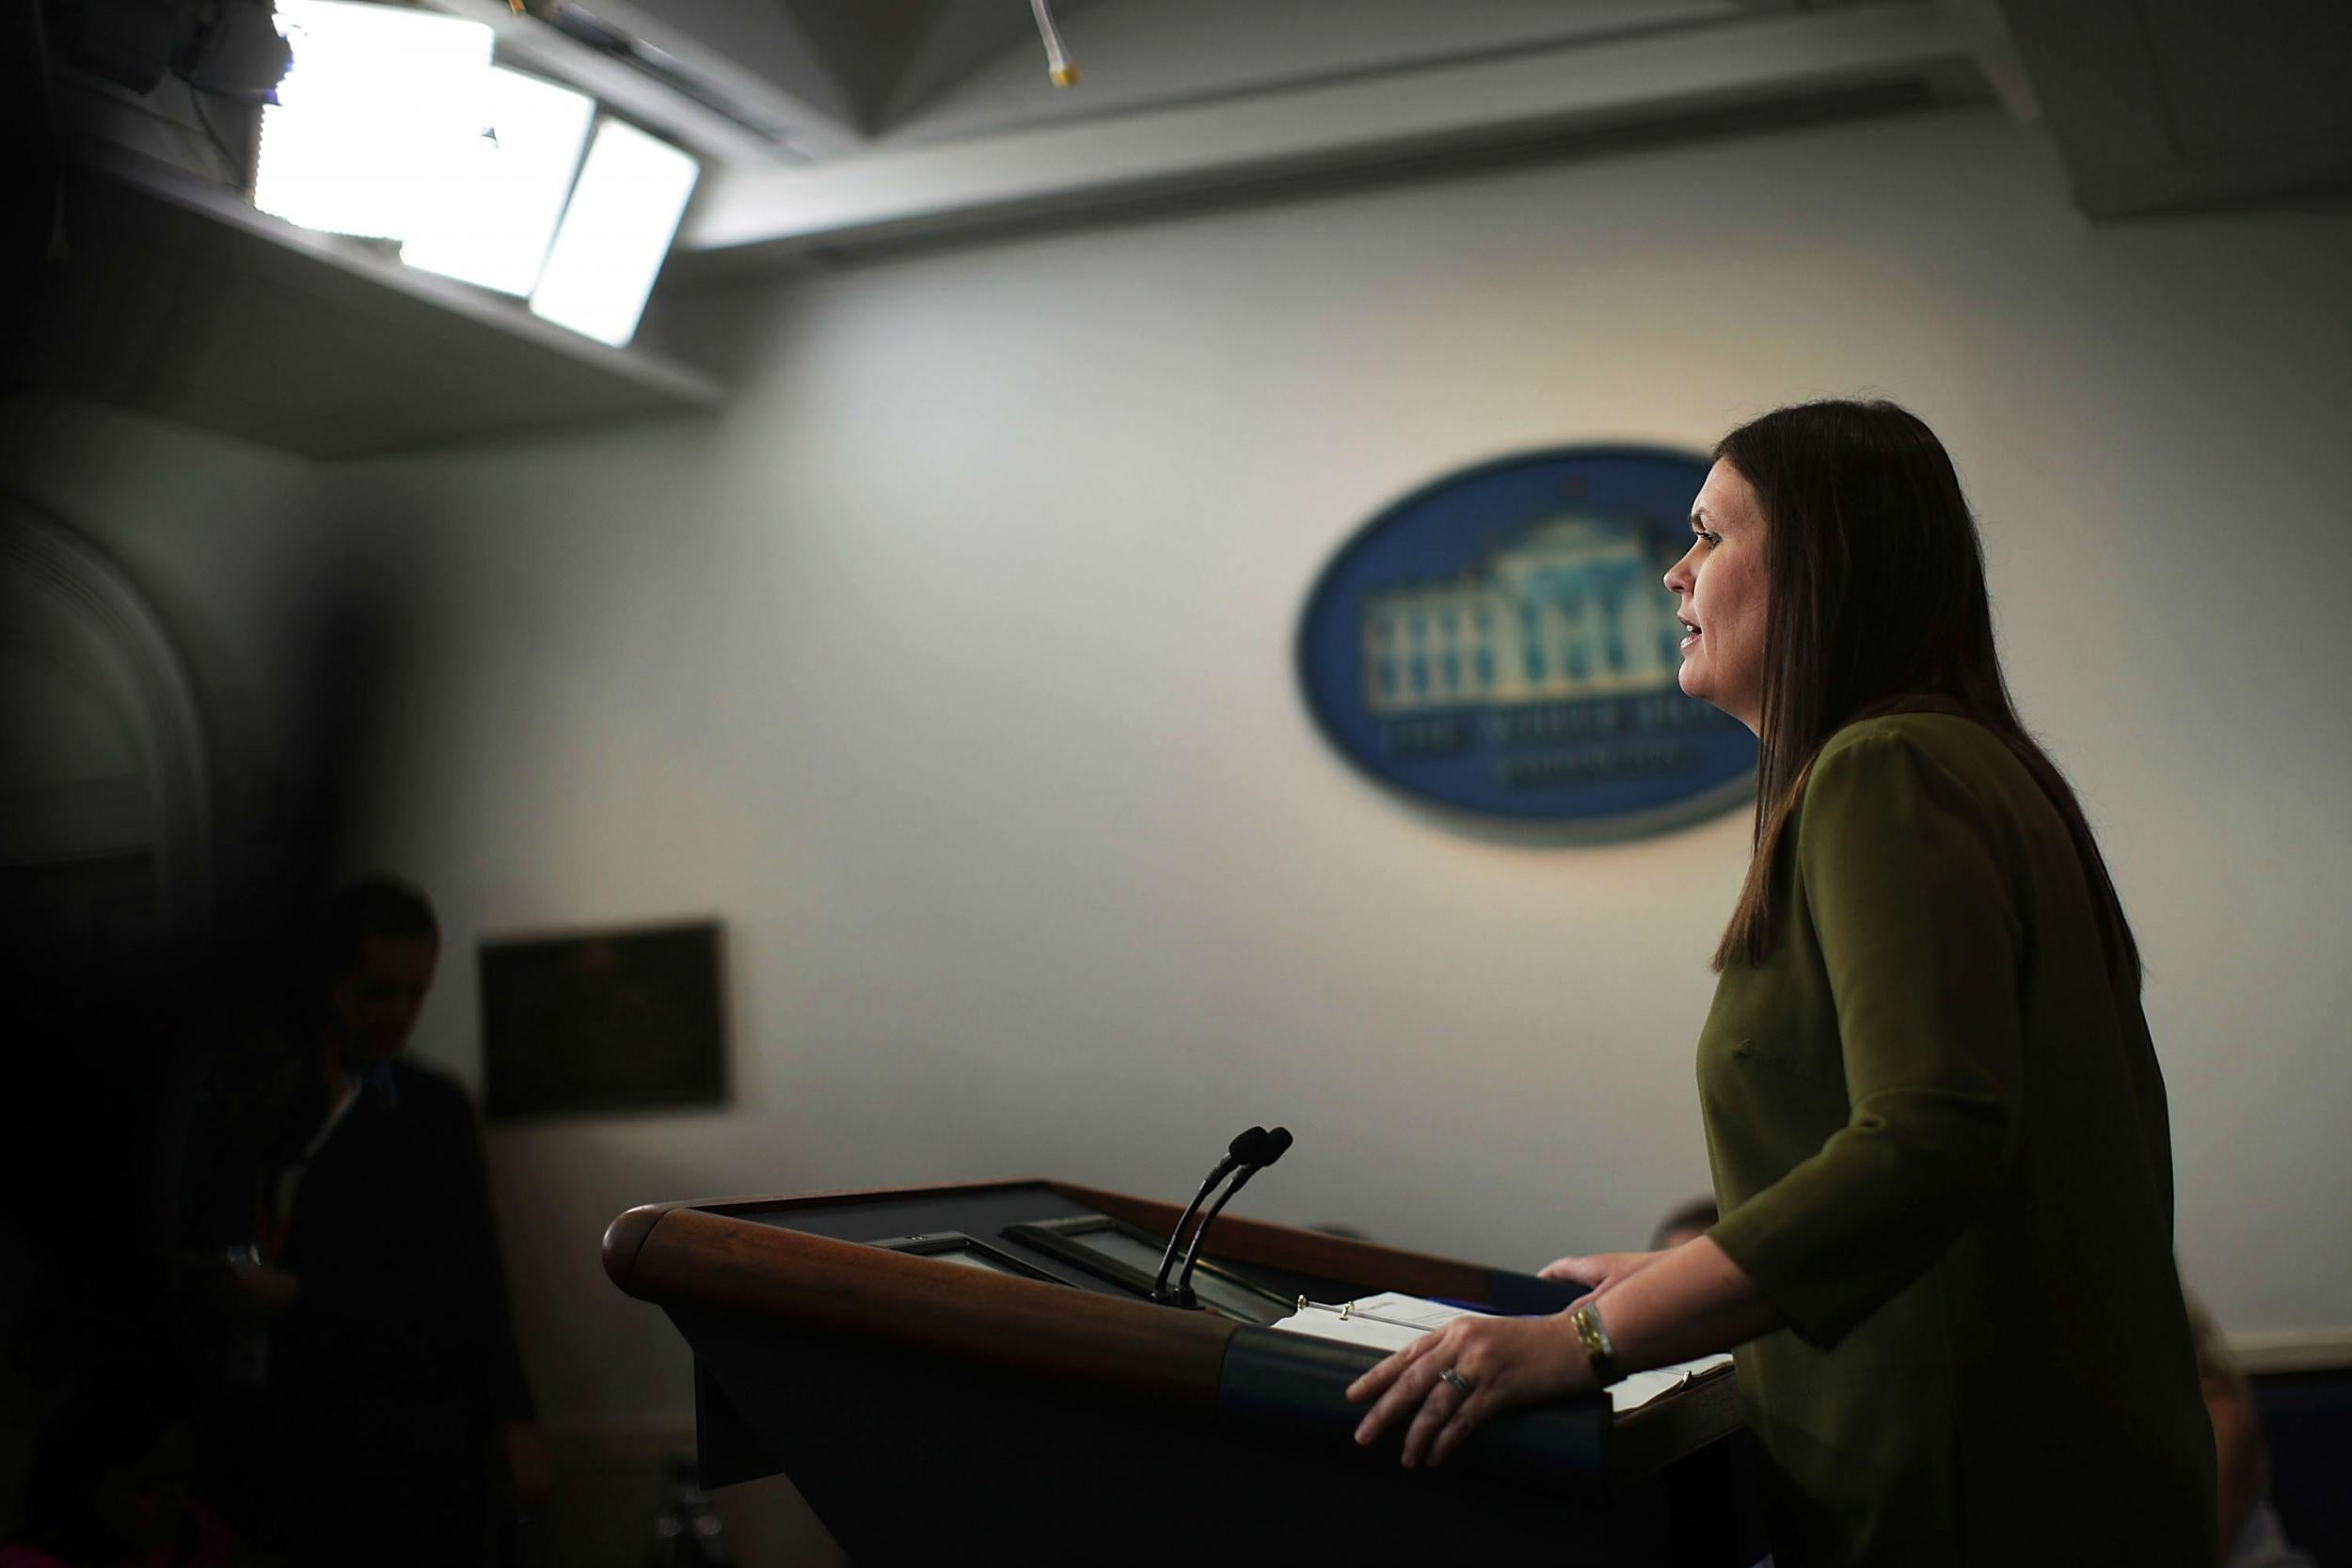 Reporter hailed as hero after broadcasting off-camera press briefing in defiance of White House rules